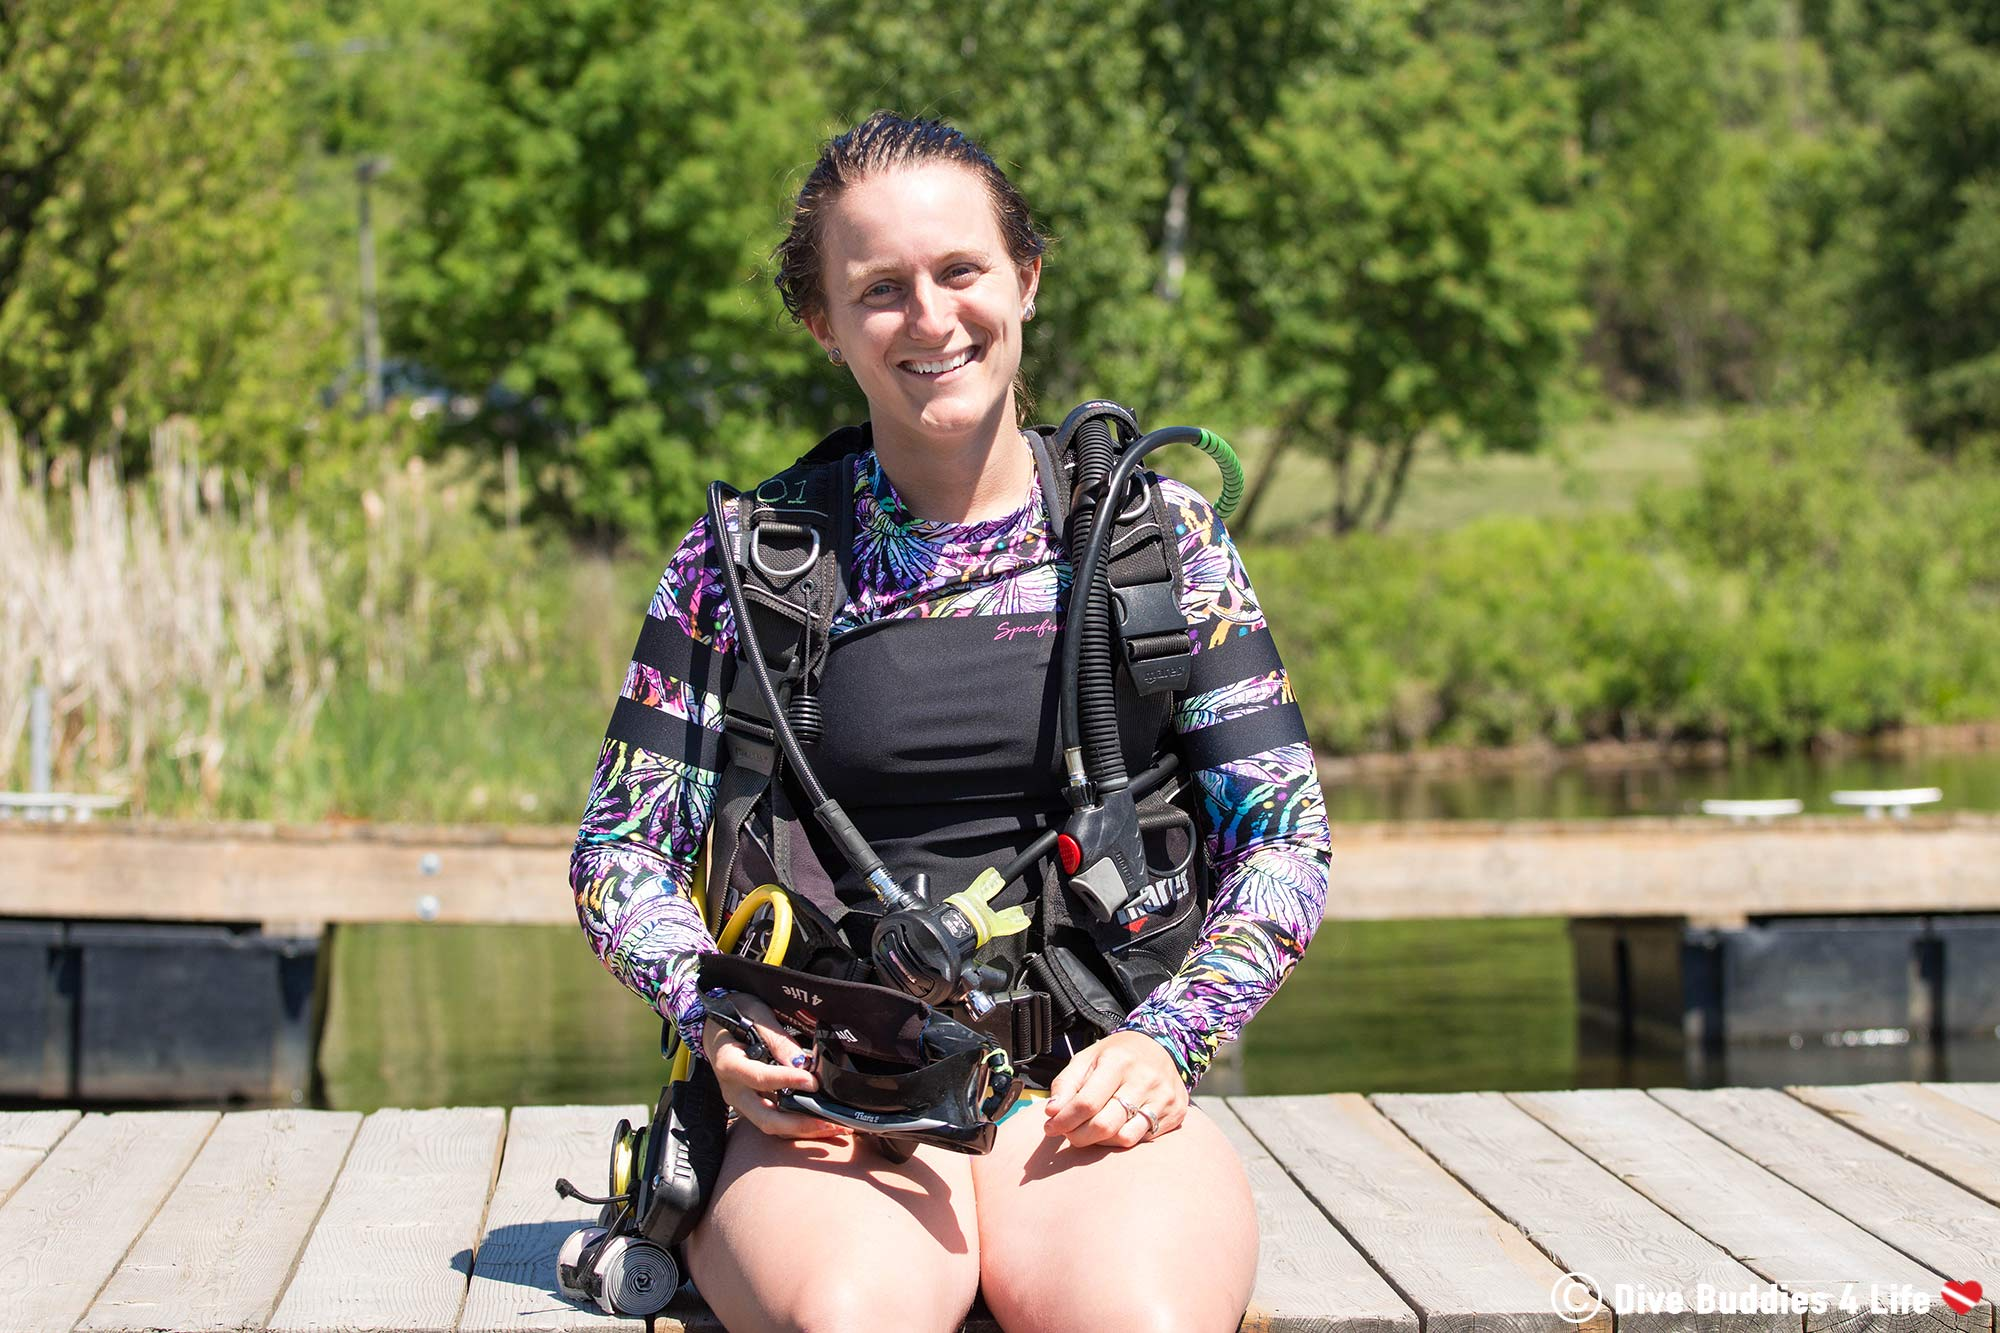 Ali Sitting On The Dock In Scuba Diving Gear With The Spacefish Army Rashguard Ready To Hit The Water, Dive Clothes